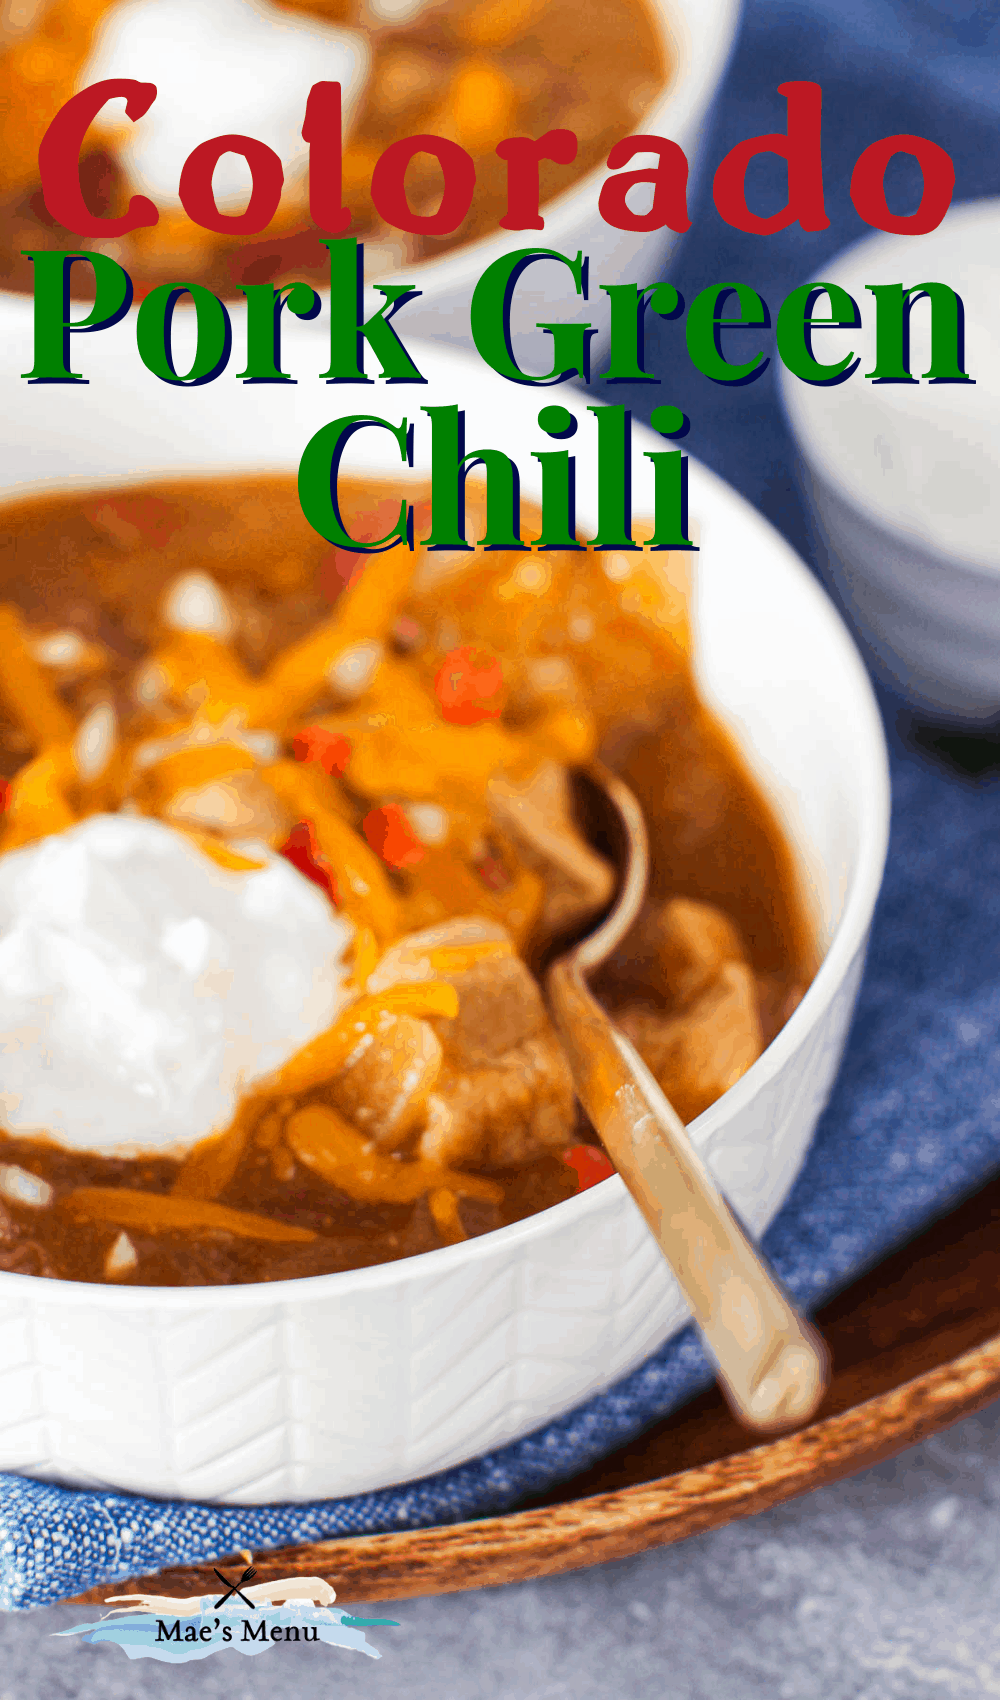 """colorado pork green chili"" with an up-close photo of a spoon in a bowl of chili"